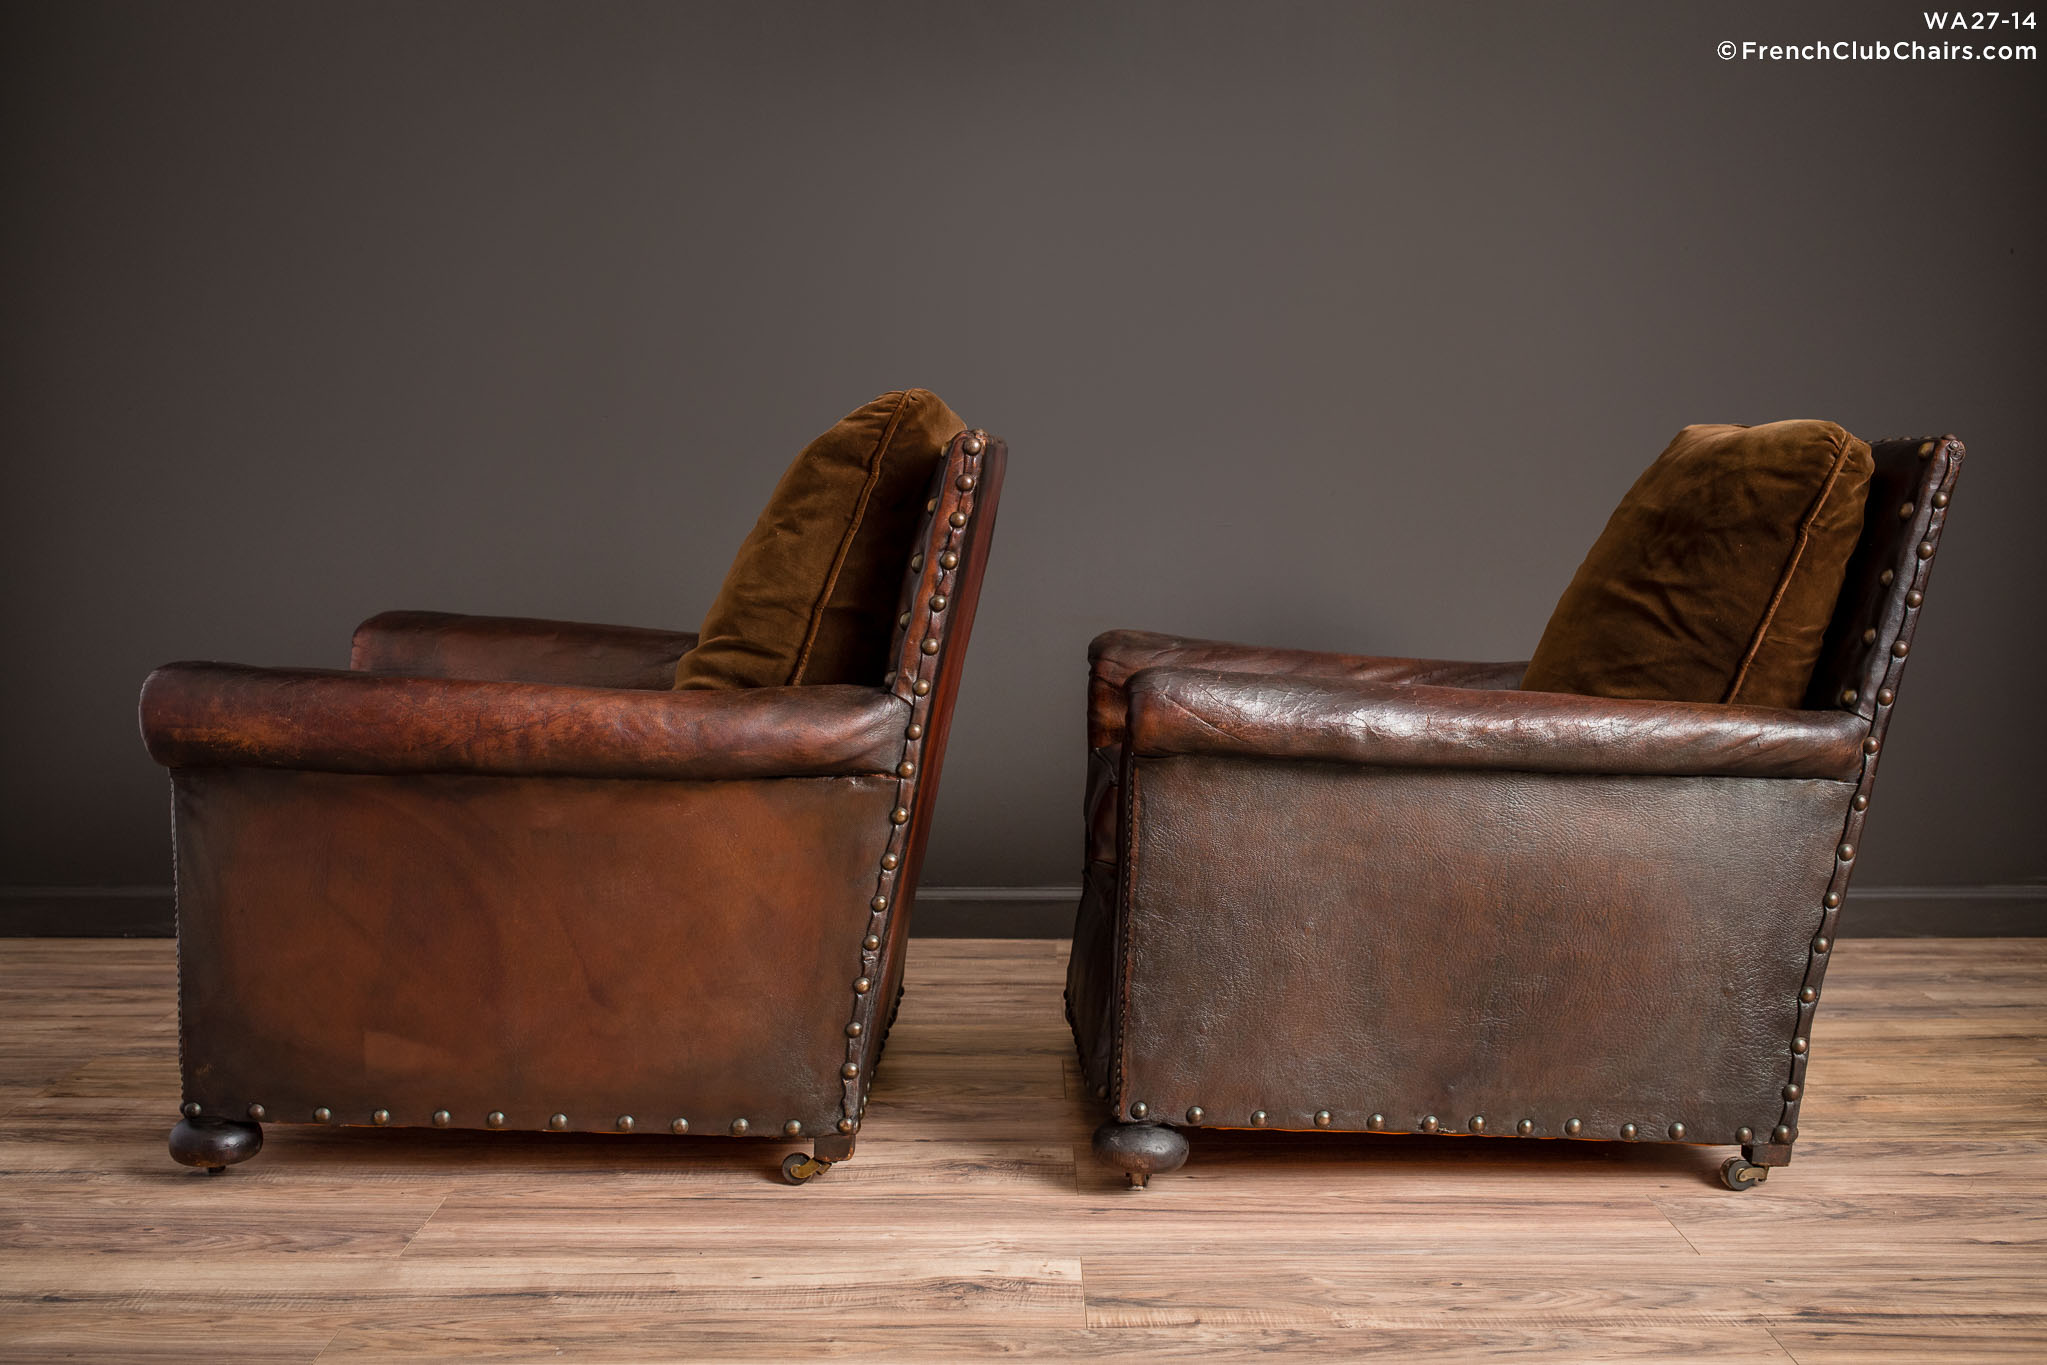 WA_27-14_Ile_de_St_Louis_Nailed_Square_Pair_R_4LT-v01-williams-antiks-leather-french-club-chair-wa_fcccom